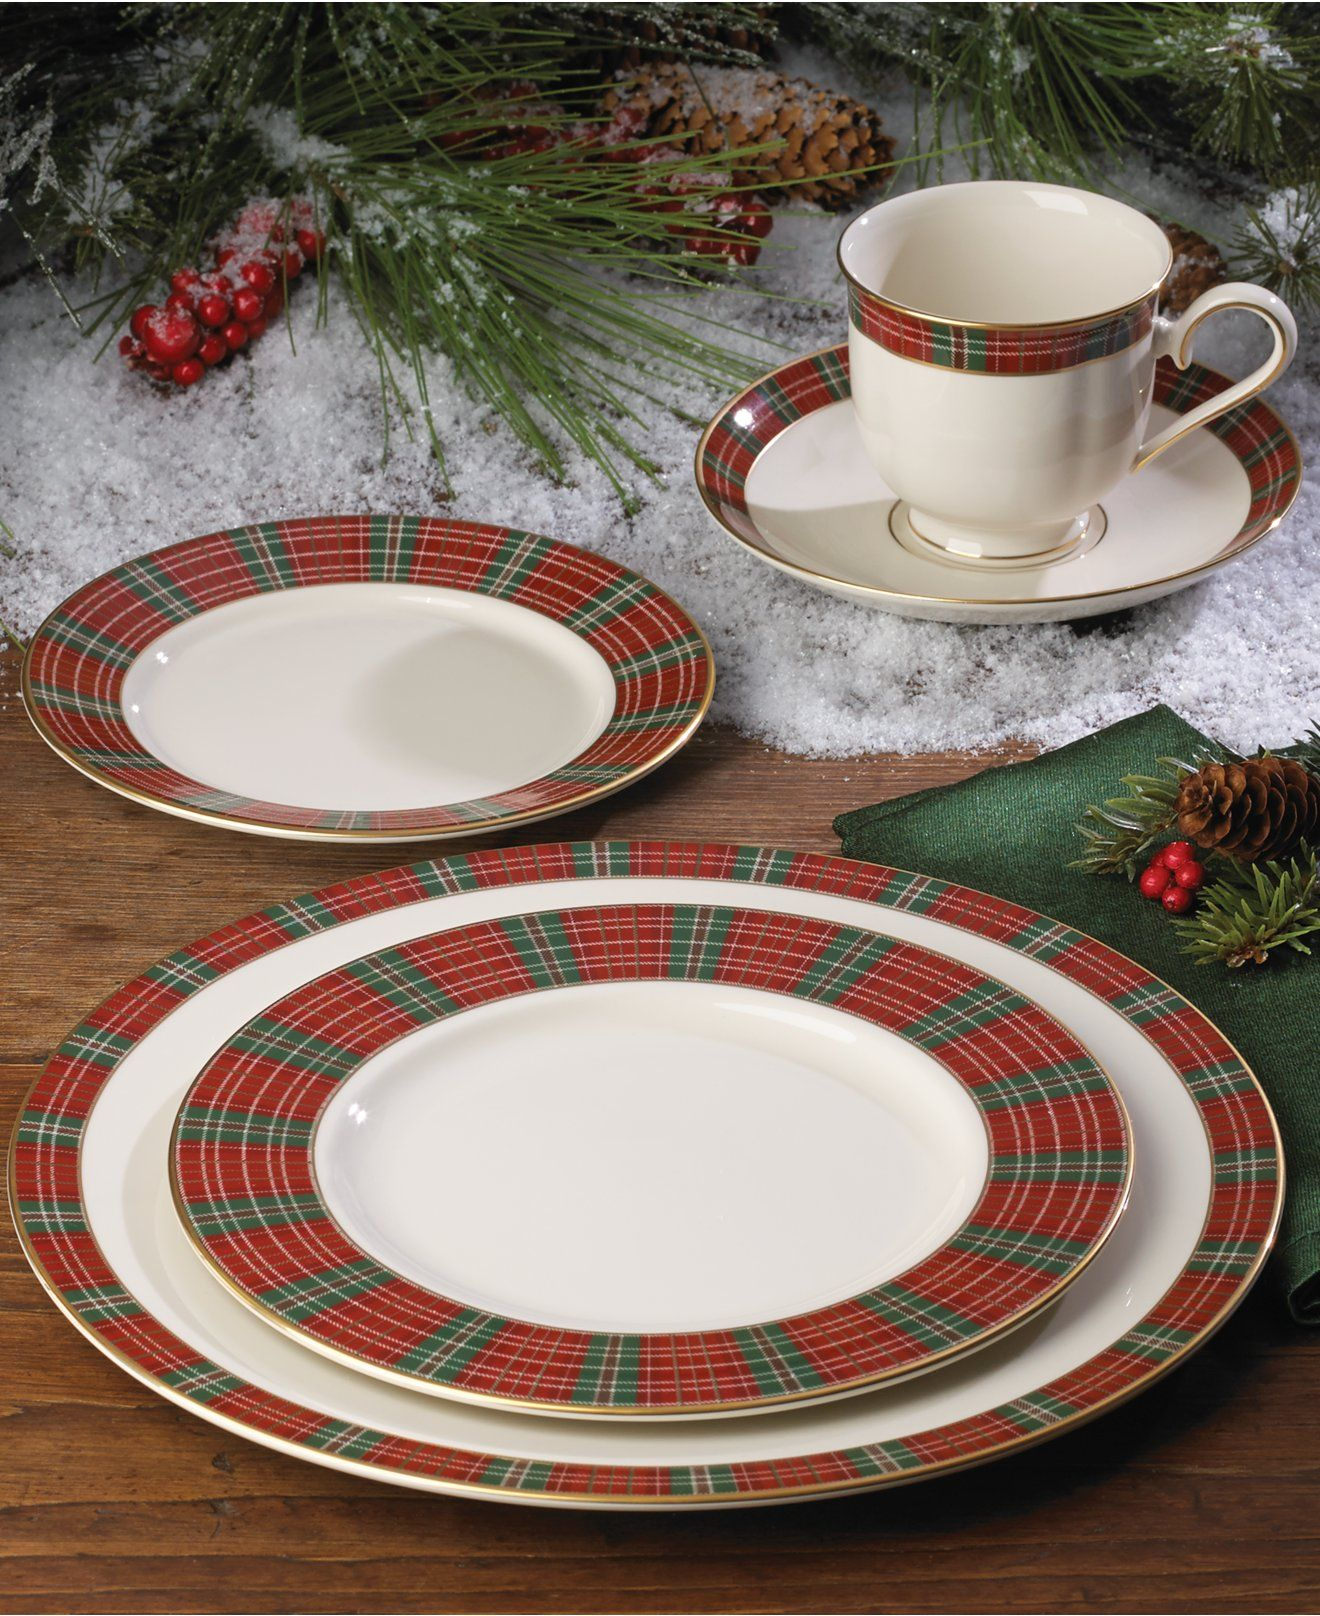 Lenox winter greetings plaid perfect for christmas a lenox lenox winter greetings plaid perfect for christmas m4hsunfo